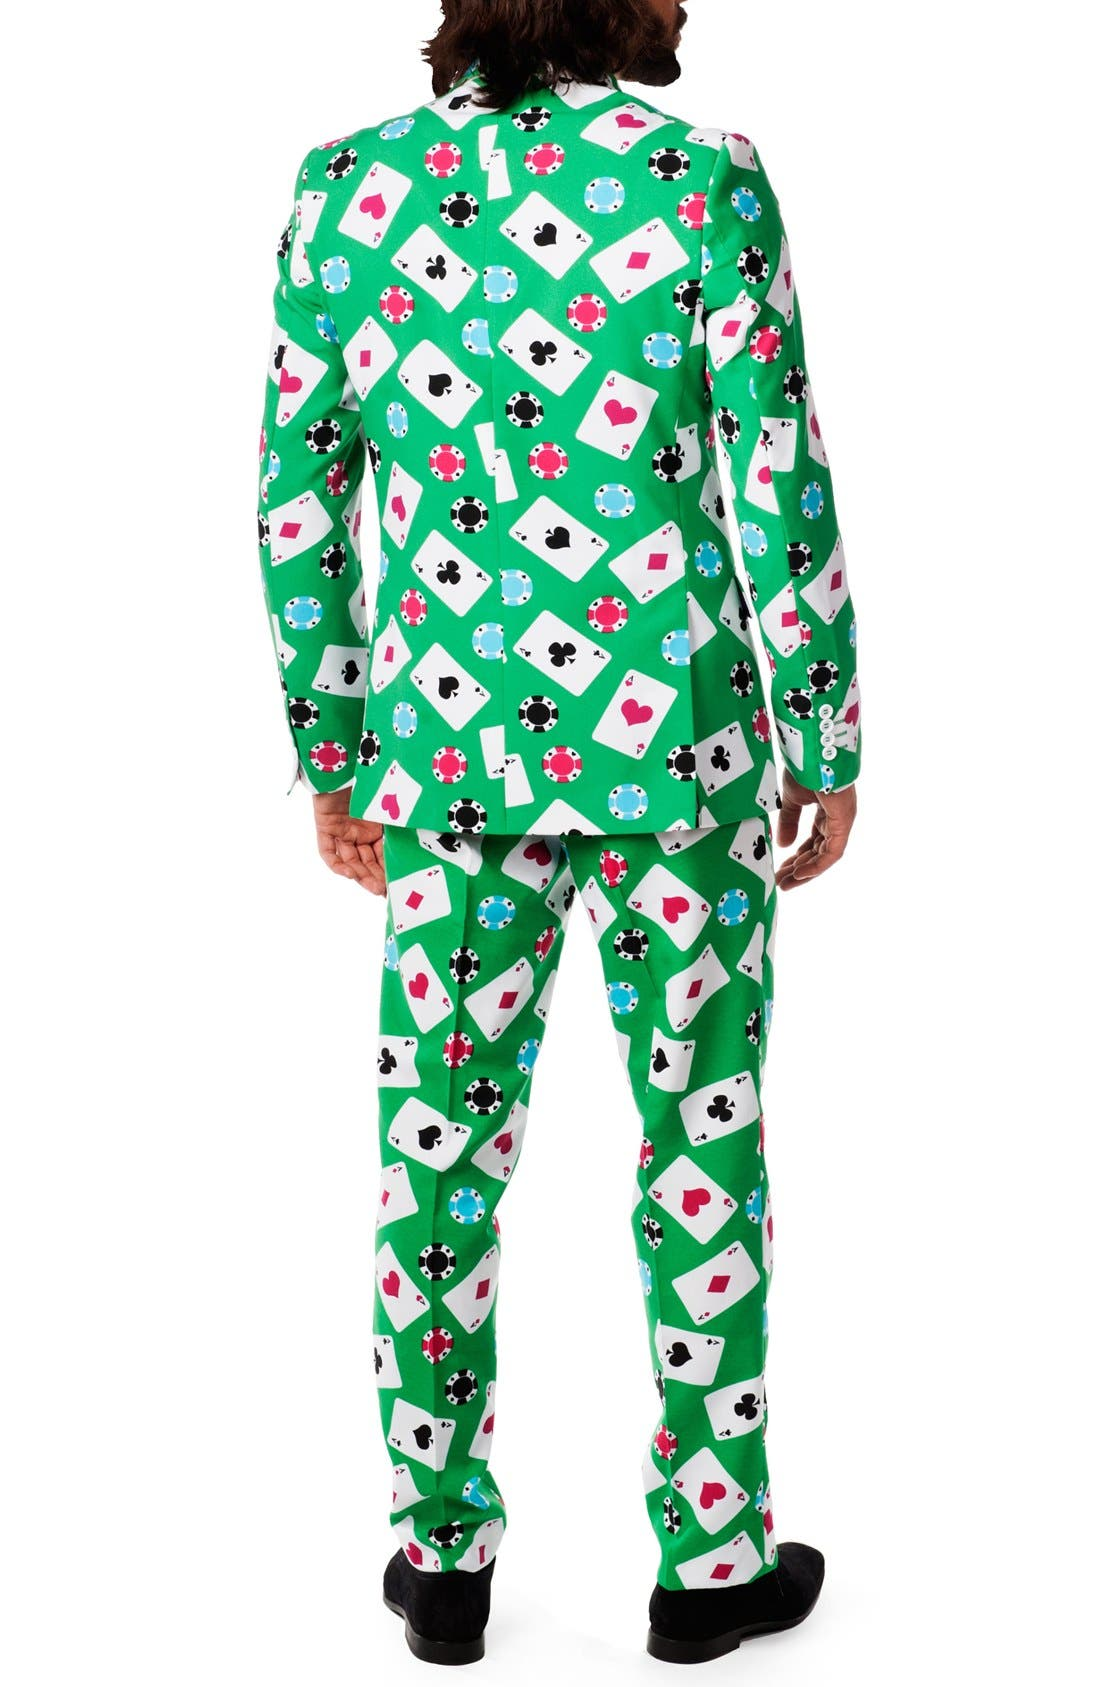 'Poker Face' Trim Fit Suit with Tie,                             Alternate thumbnail 2, color,                             Green